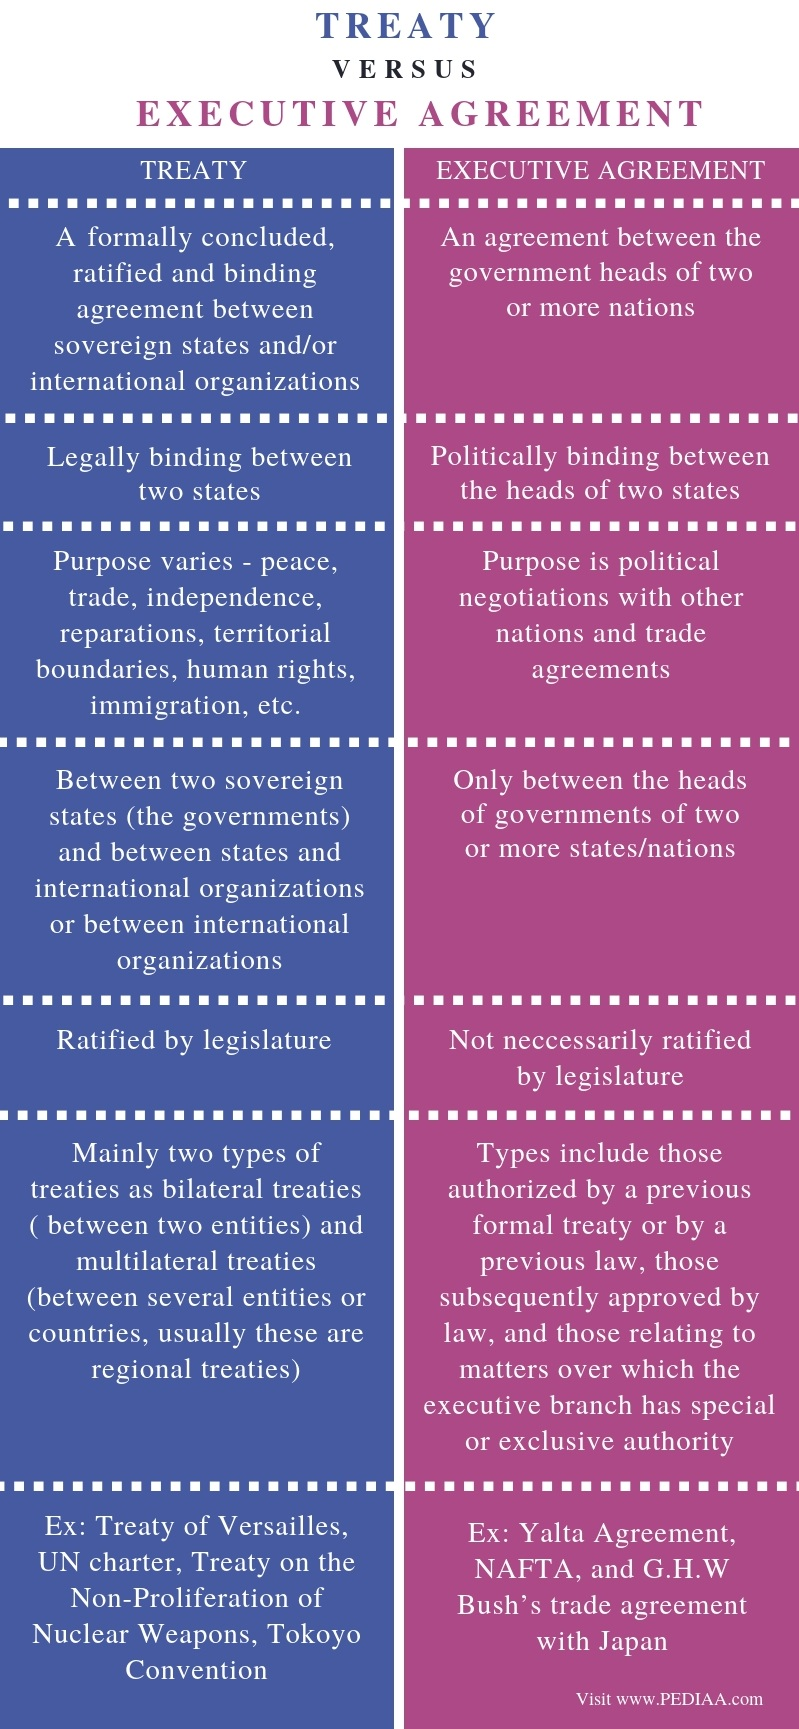 What Are The Key Differences Between An Executive And A Non >> What Is The Difference Between Treaty And Executive